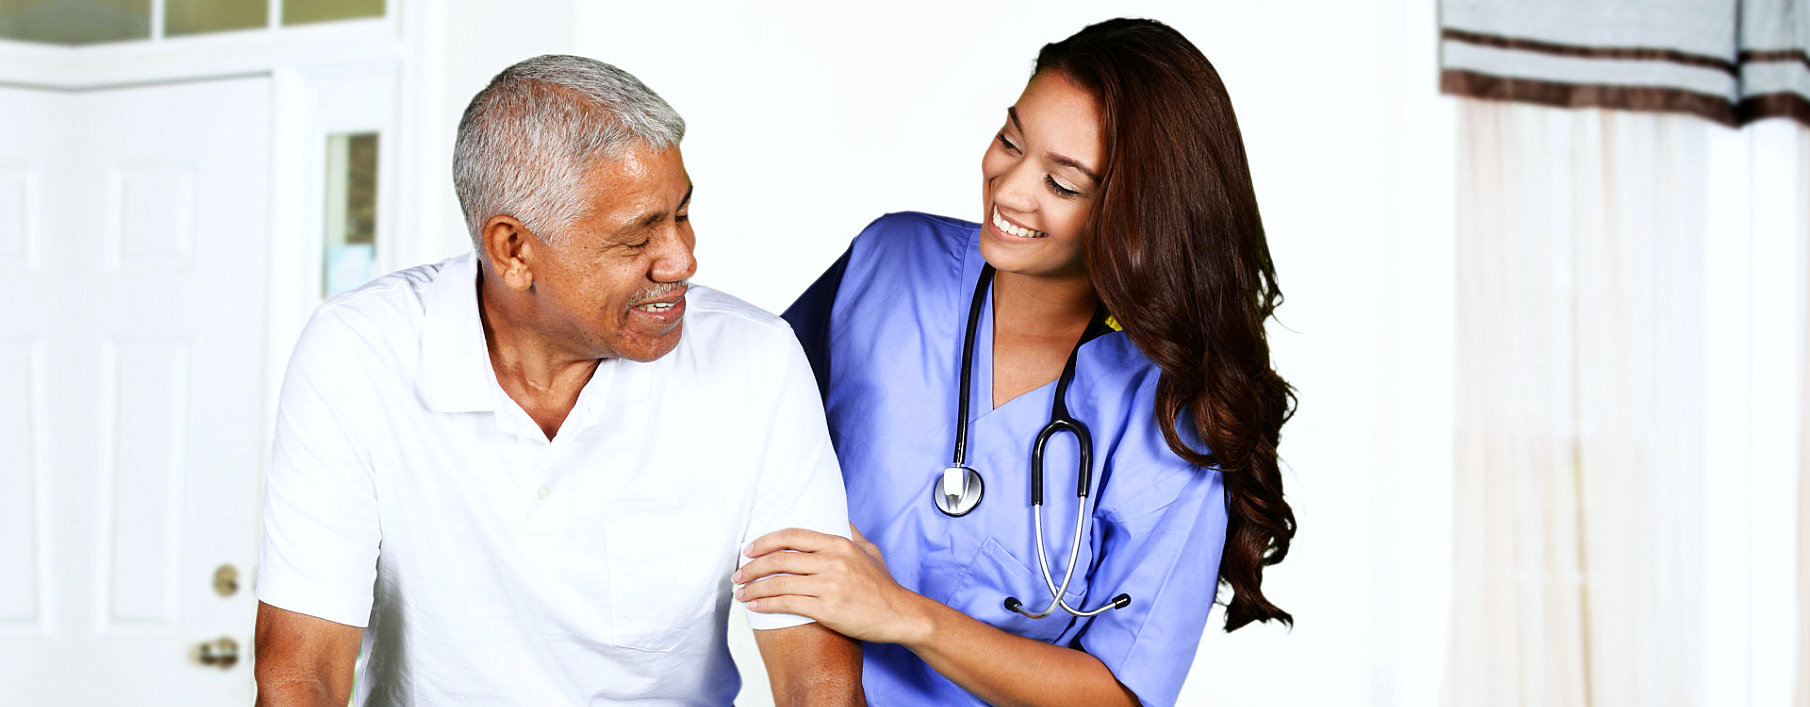 nurse and elderly man smiling smiling with each other